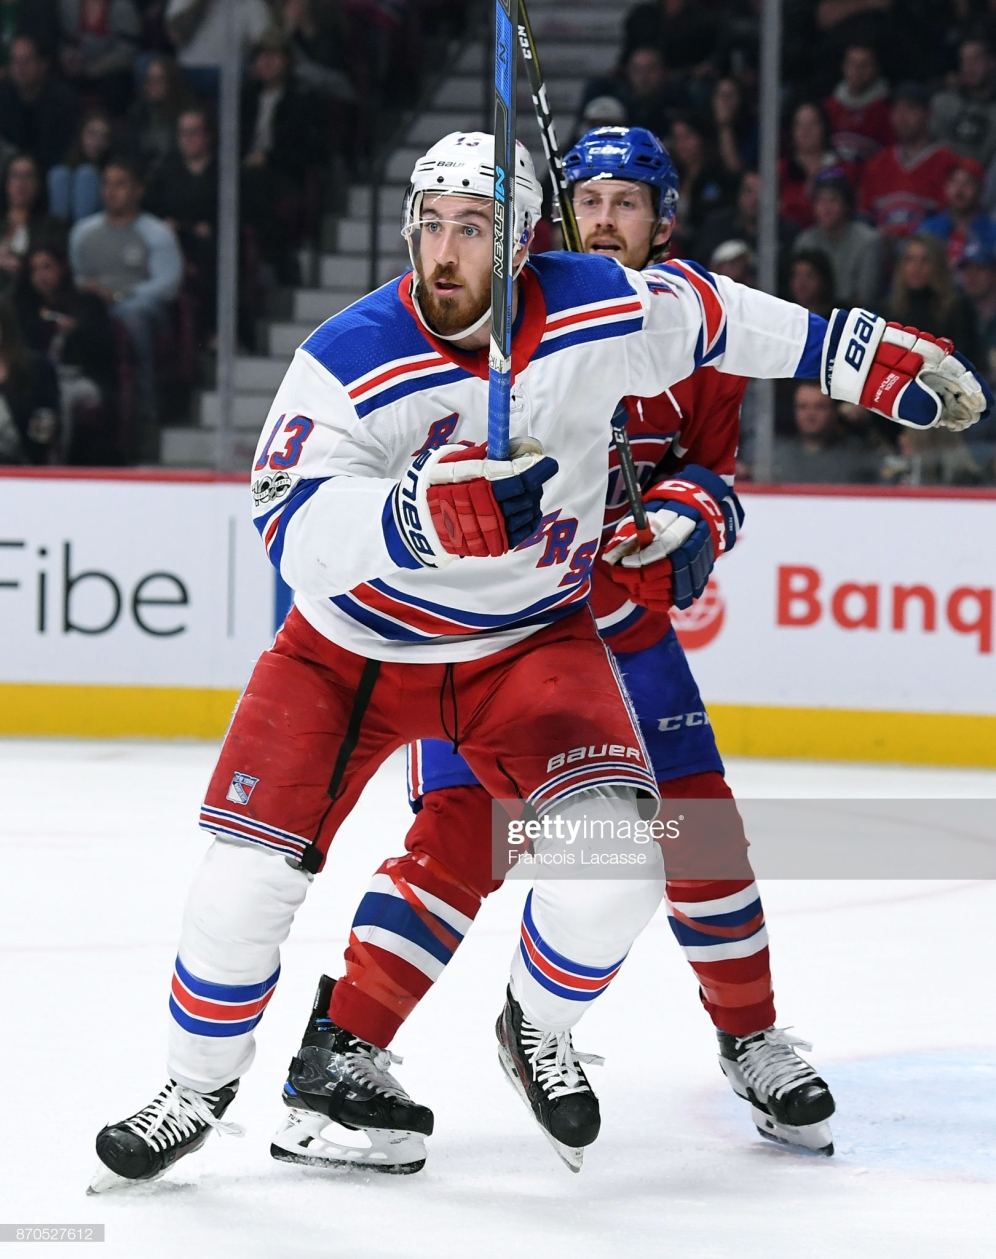 MONTREAL, QC - OCTOBER 28: Kevin Hayes #13 of the New York Rangers skates against the Montreal Canadiens in the NHL game at the Bell Centre on October 28, 2017 in Montreal, Quebec, Canada. (Photo by Francois Lacasse/NHLI via Getty Images) *** Local Caption ***